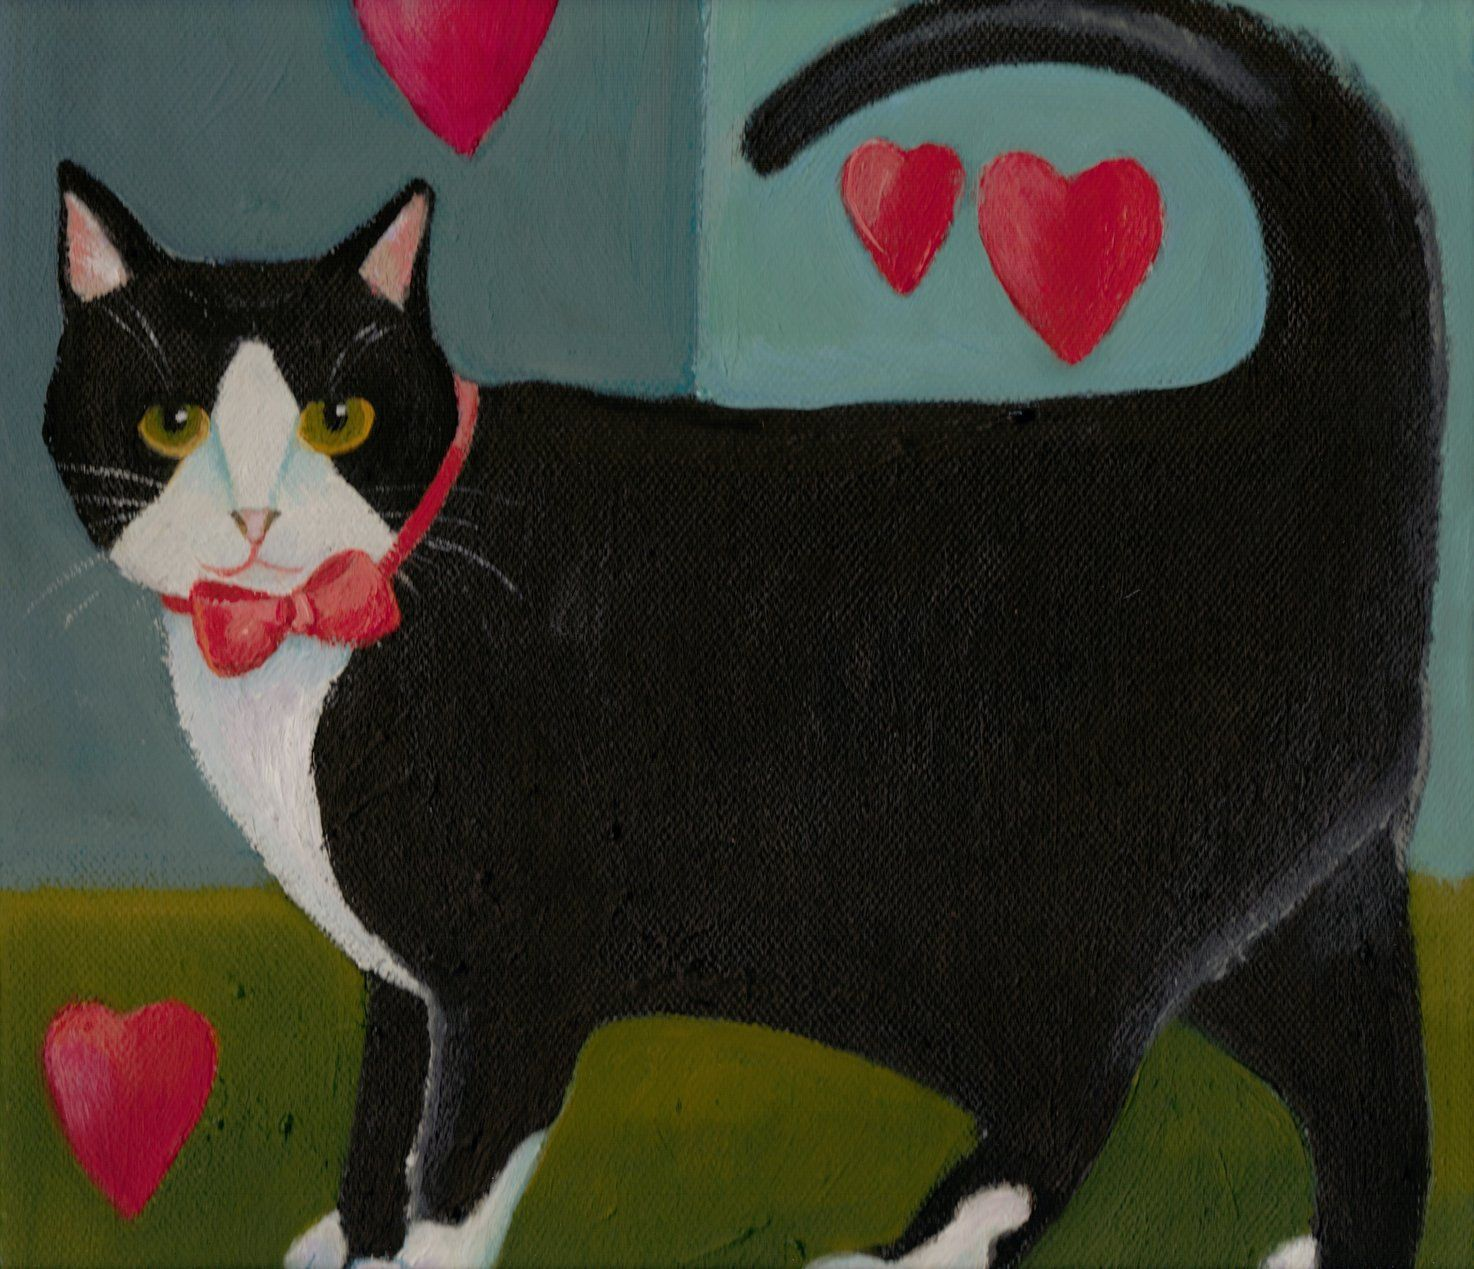 Black and White Cat with Hearts, by Arabella, Plum and Bear, Etsy